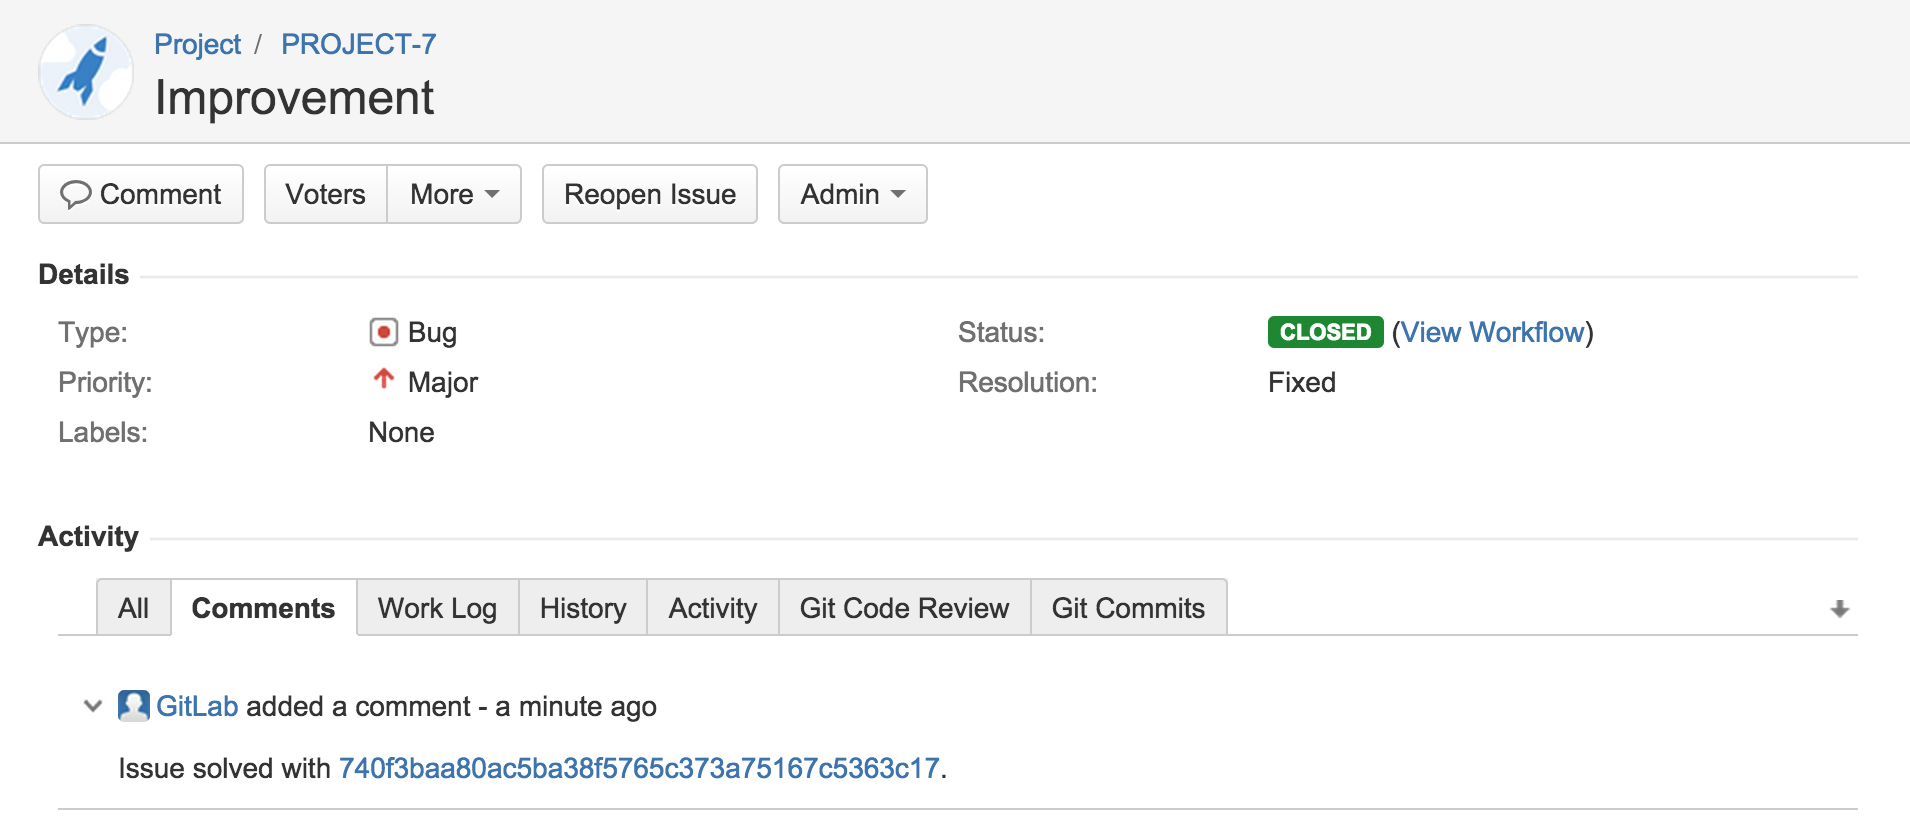 doc/integration/img/jira_service_close_issue.png